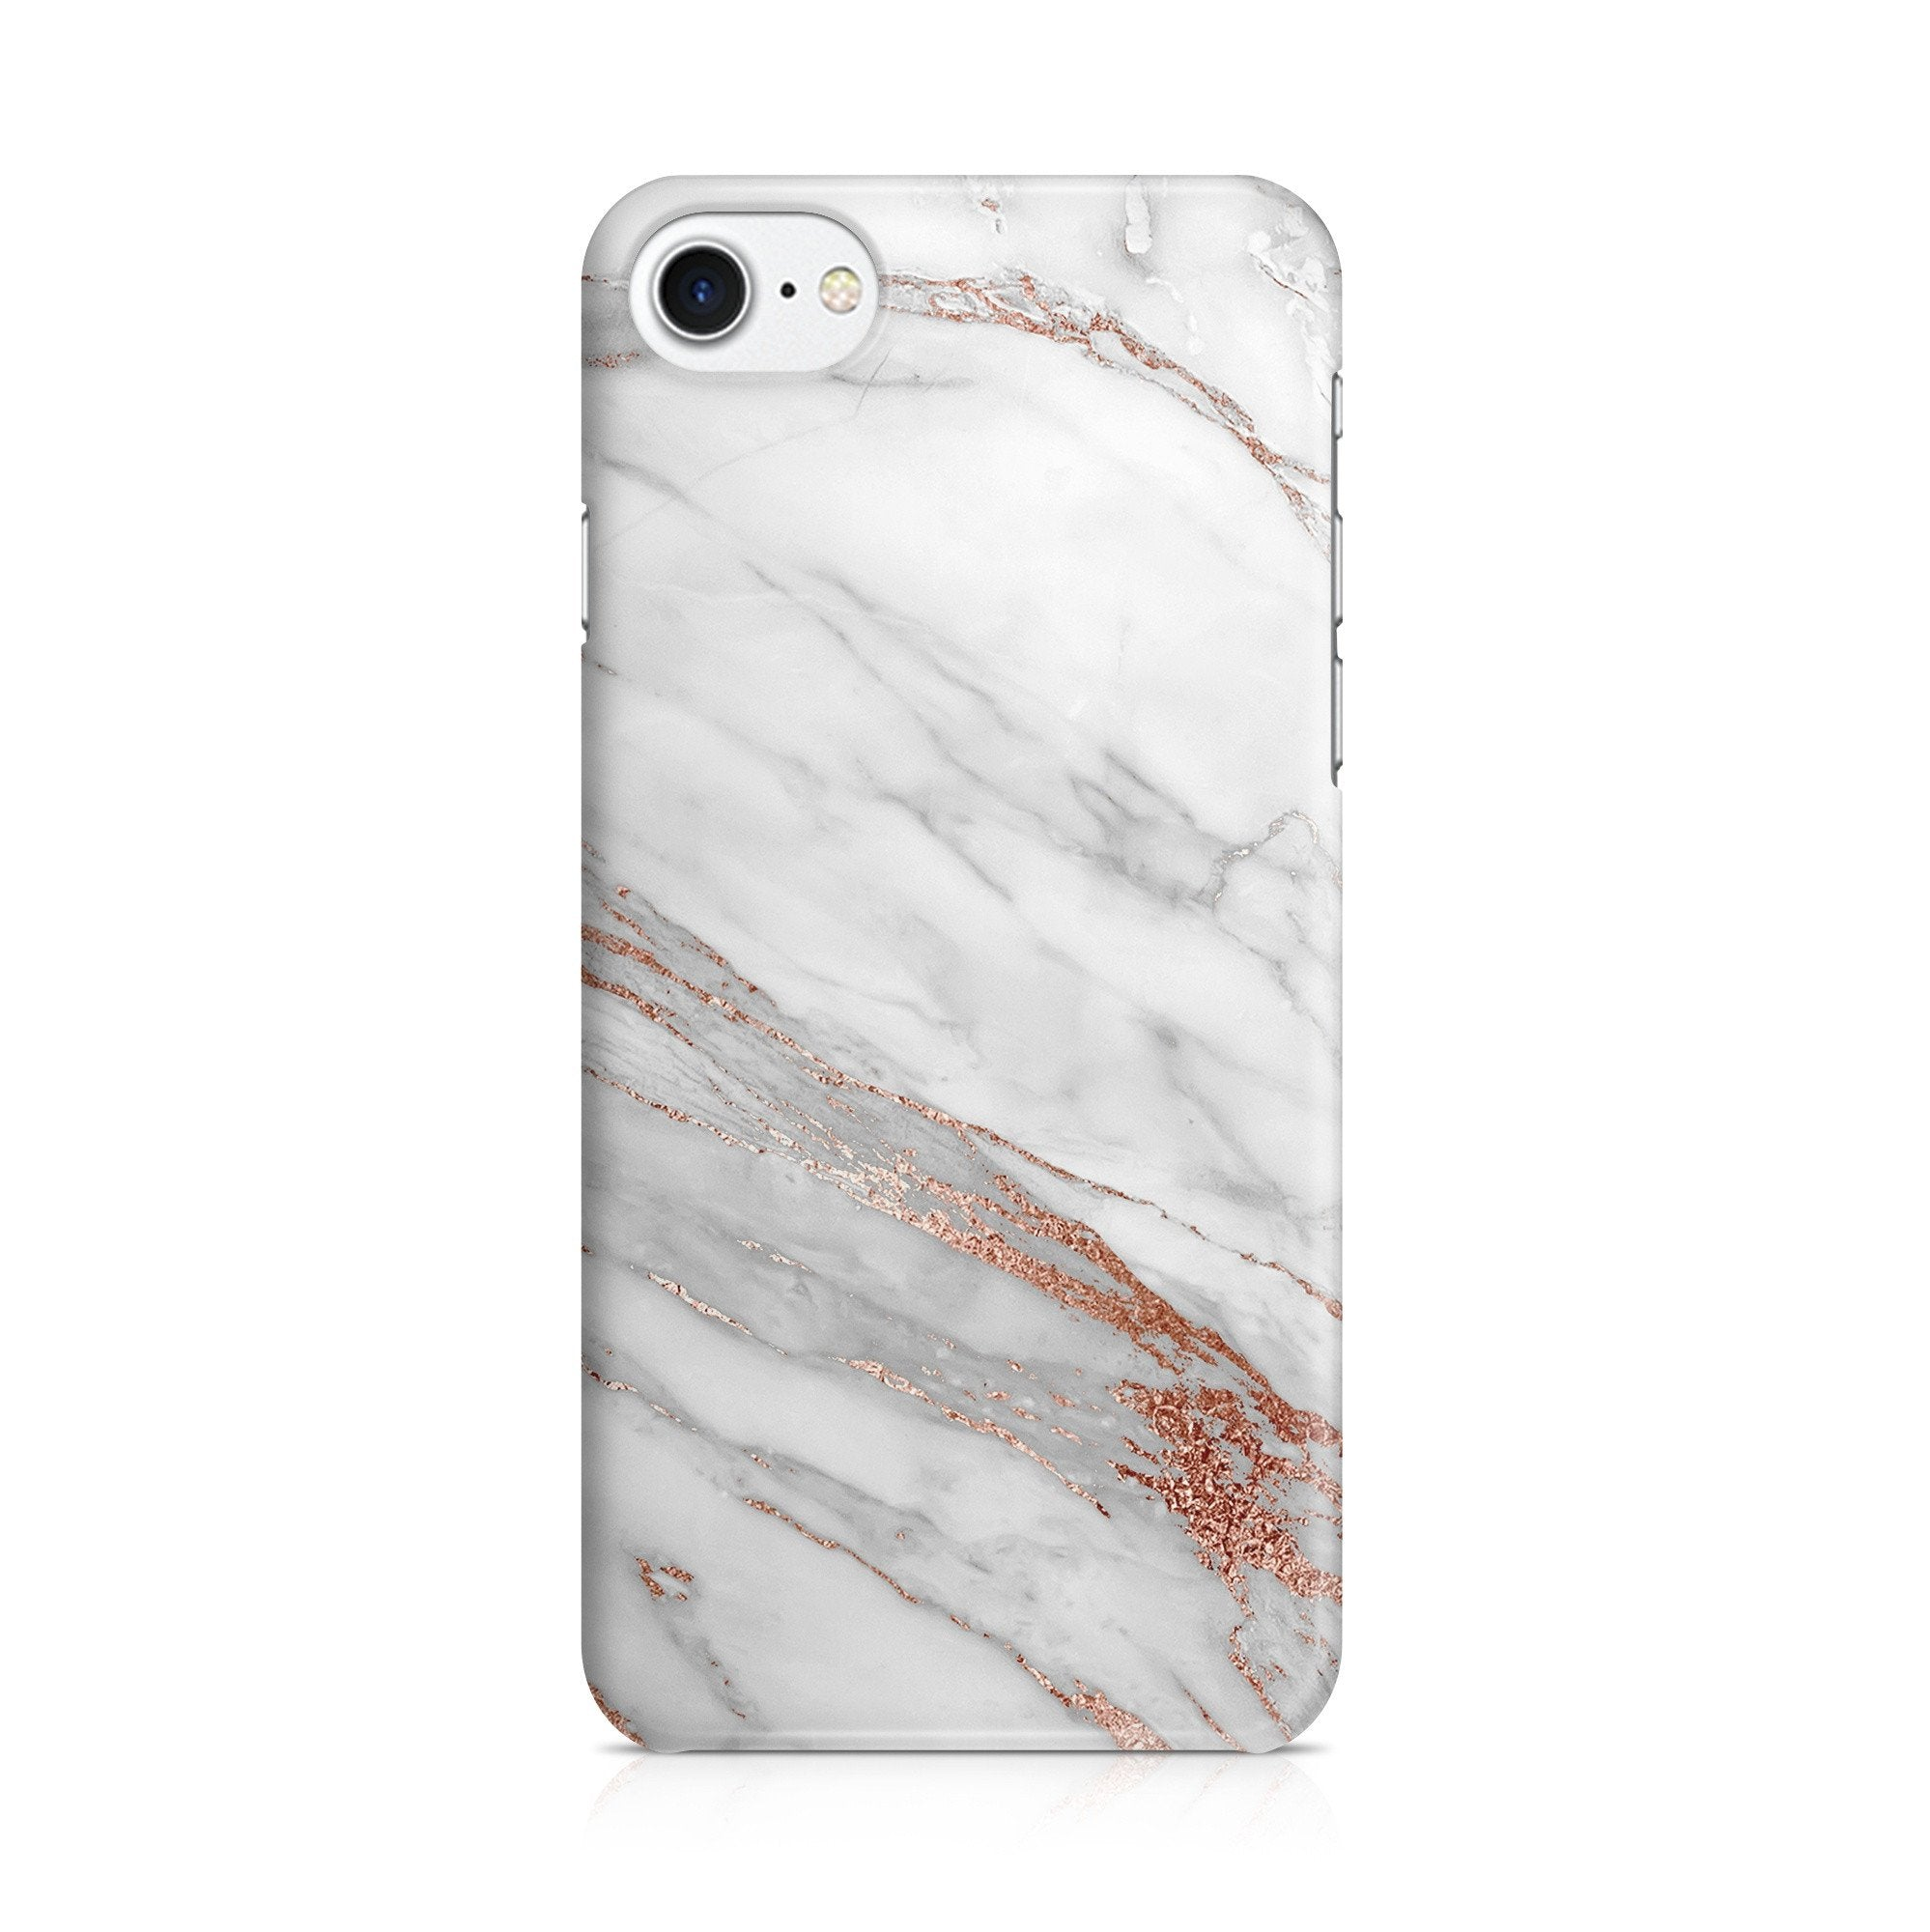 iPhone 7 hoesje - RoséGold Marble